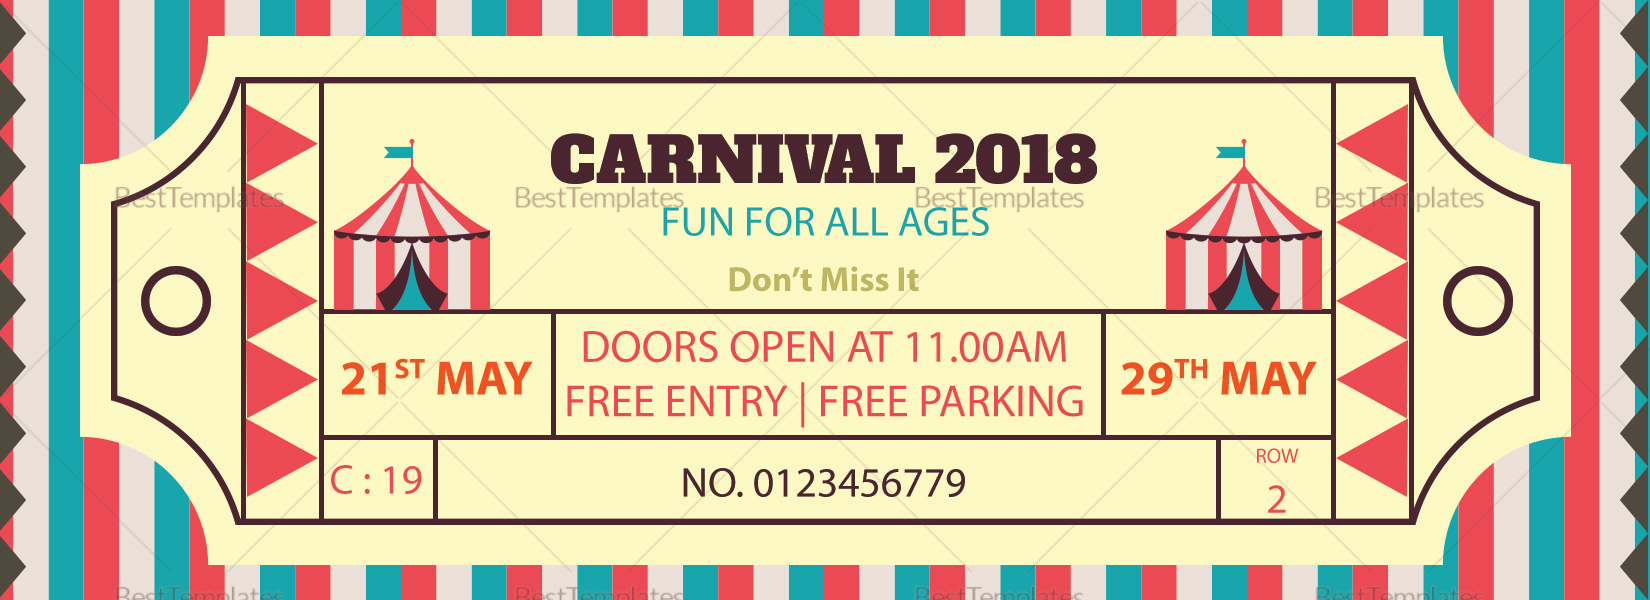 simple carnival ticket design template in word psd pages publisher. Black Bedroom Furniture Sets. Home Design Ideas